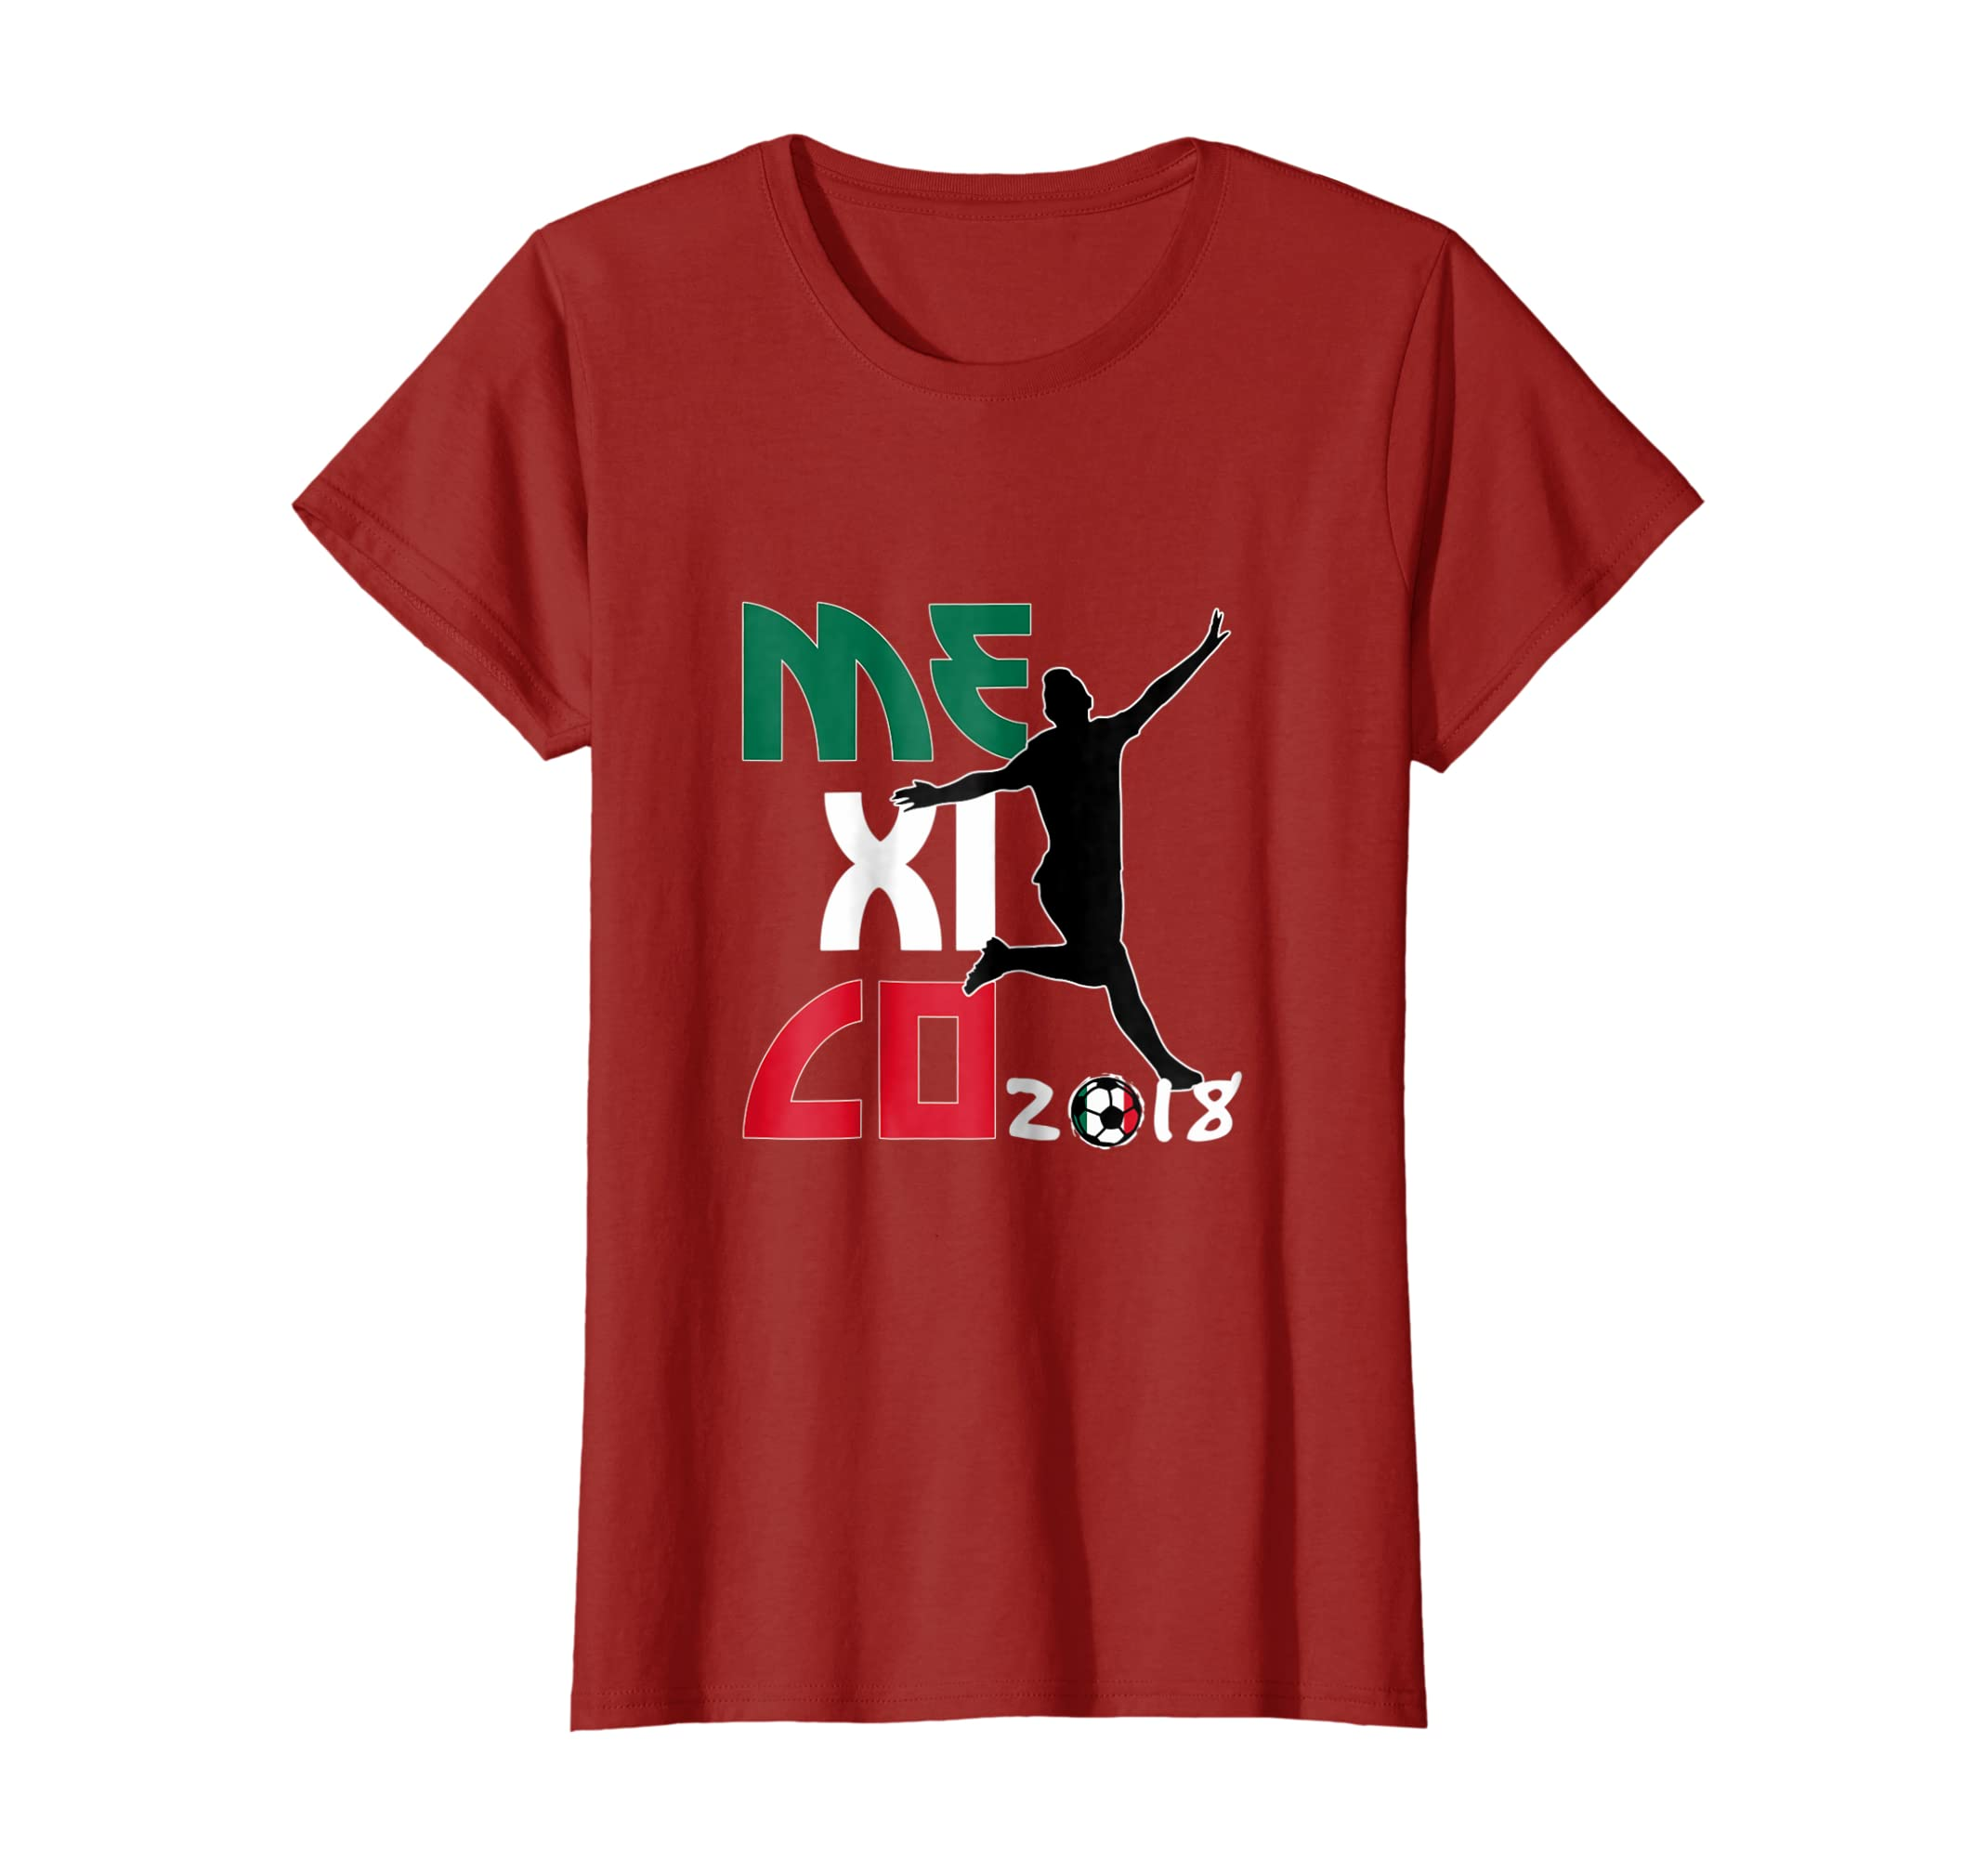 Amazon.com: Womens Playera Seleccion Mexicana Futbol 2018 Tshirt Camiseta Mujer: Clothing